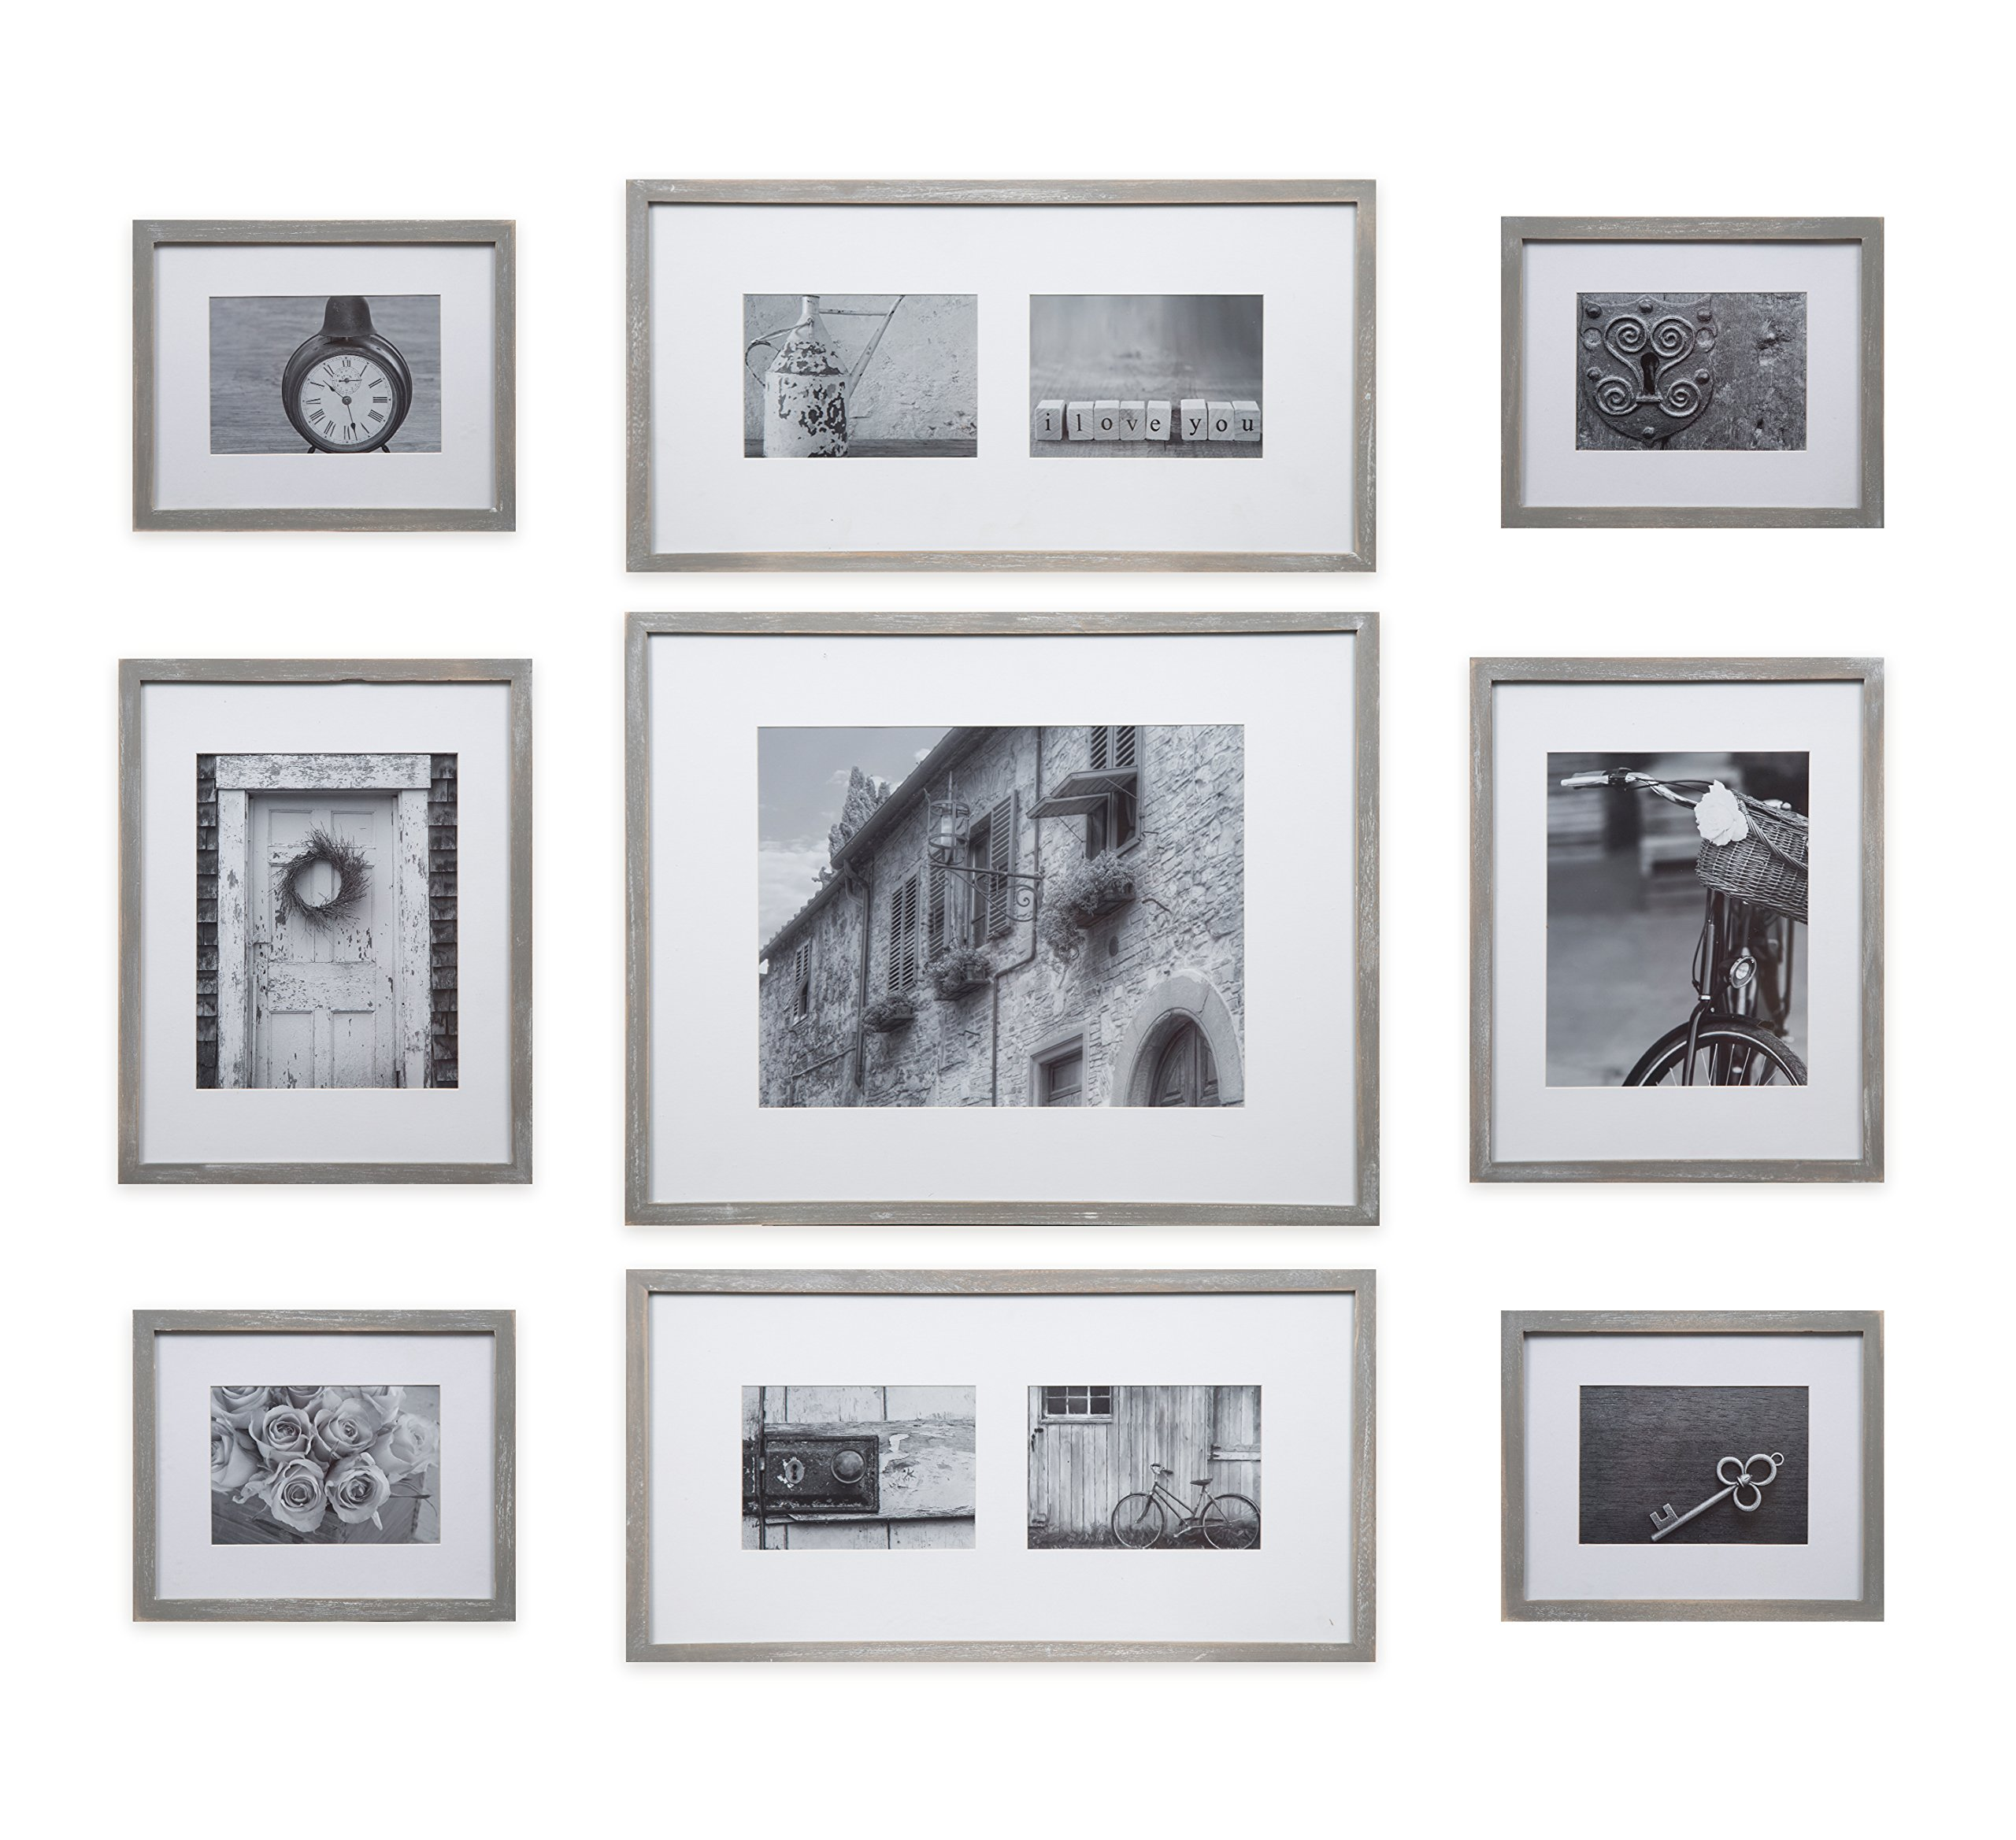 Gallery Perfect Decorative Art Prints & Hanging Template 9 Piece Greywash Wood Photo Frame Wall Gallery Kit, Grey